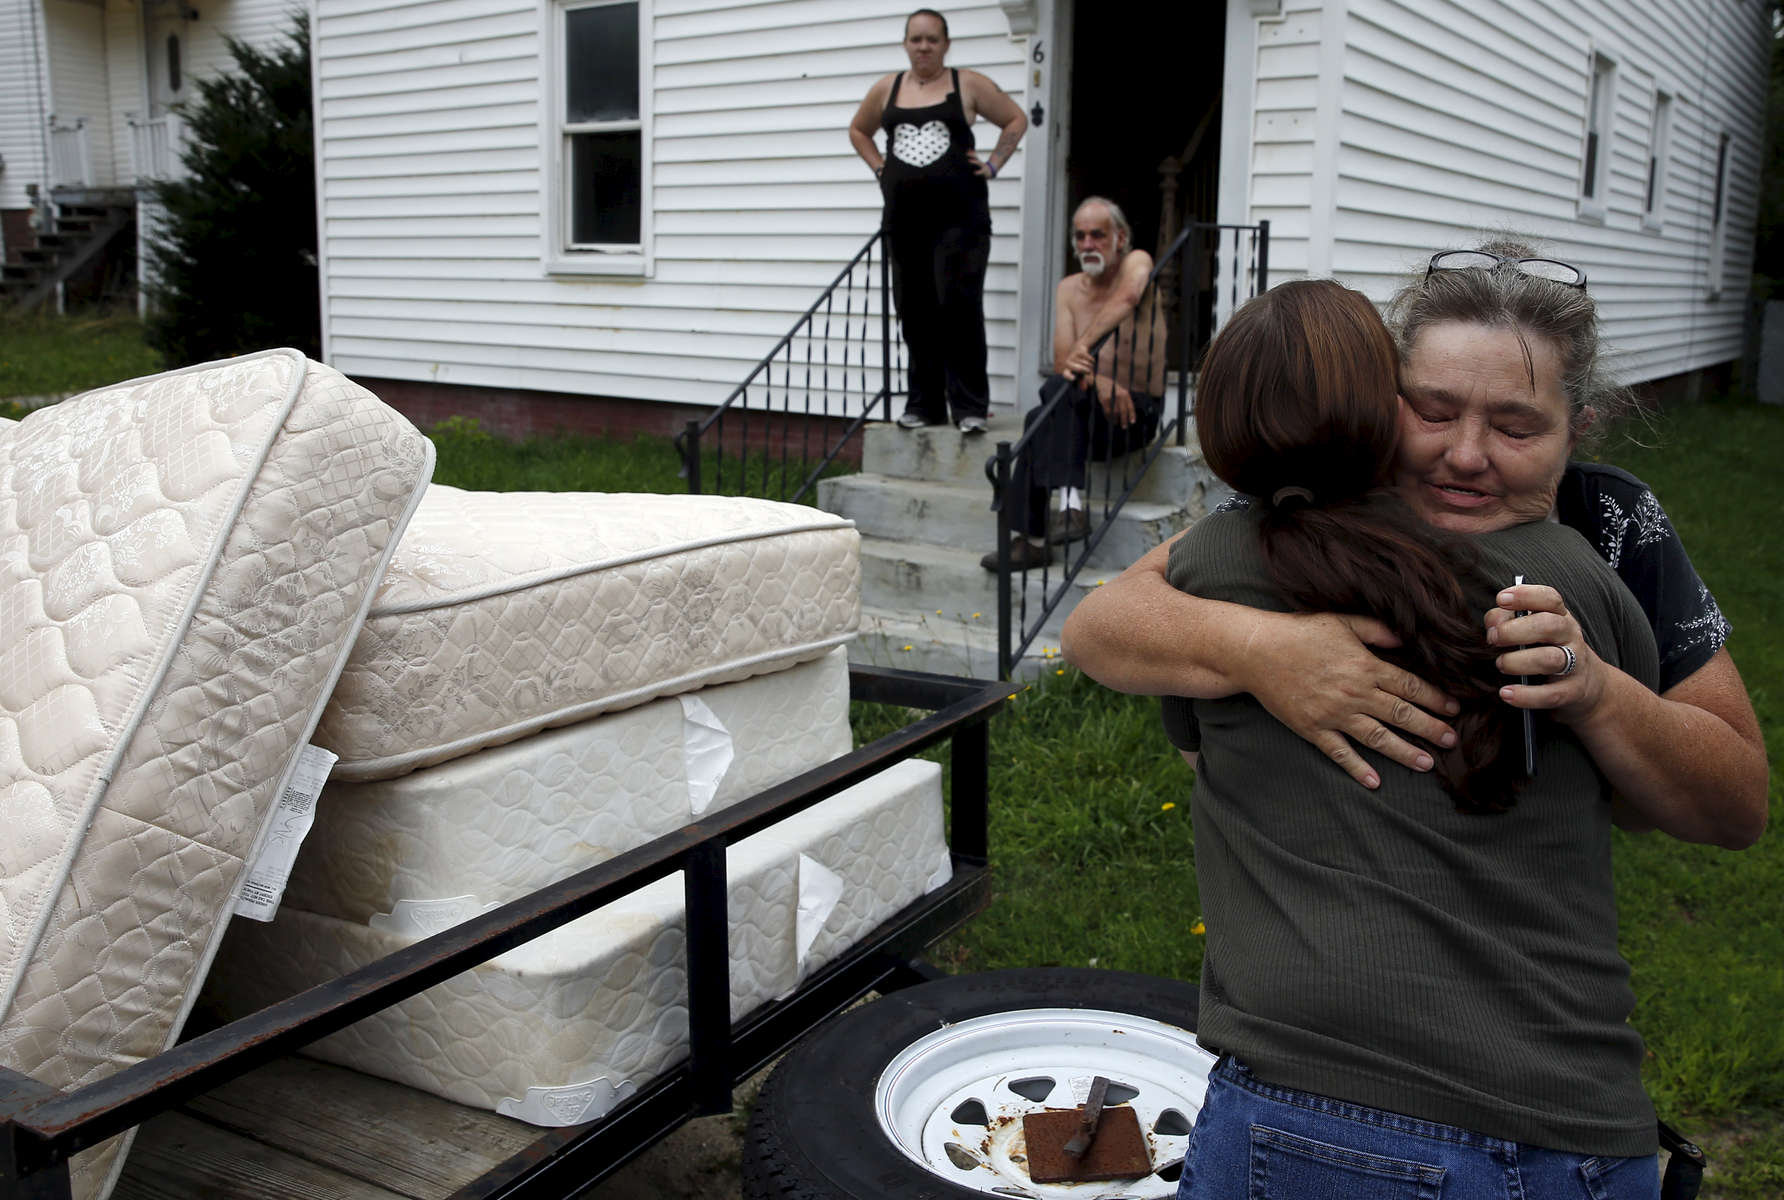 Lisbon, Maine -- 8/9/2015-- After months of searching for a new place to live a craigslist post had finally turned up a home they could afford. Anna Cunningham, of Skowhegan, arrived to the family's new home with a delivery of beds for the boys and couches and chairs for the family and Lanette grabbed her and pulled her in for a grateful hug.